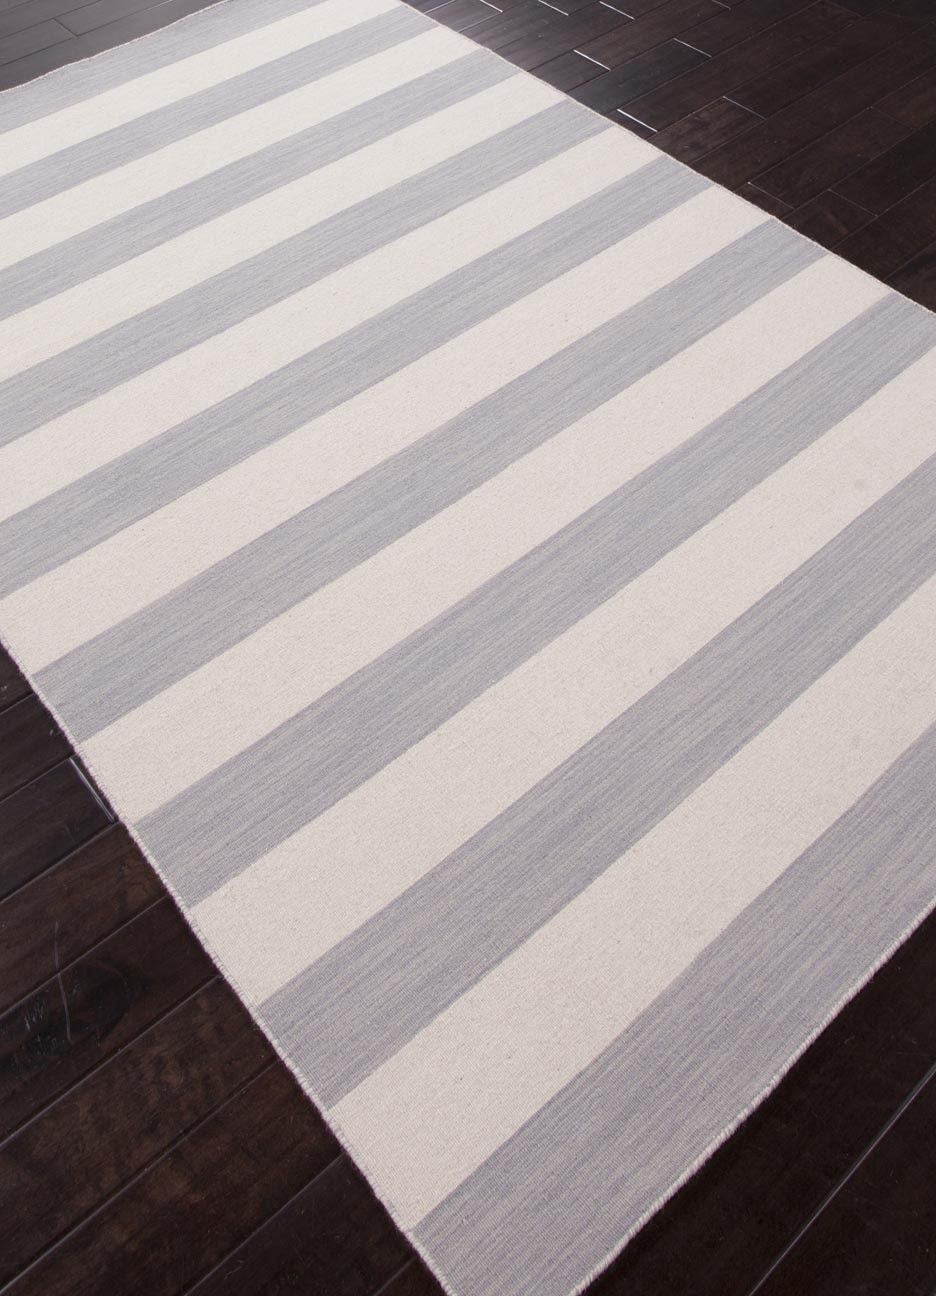 Dias Collection From Jaipur Gray And White Striped Area Rug